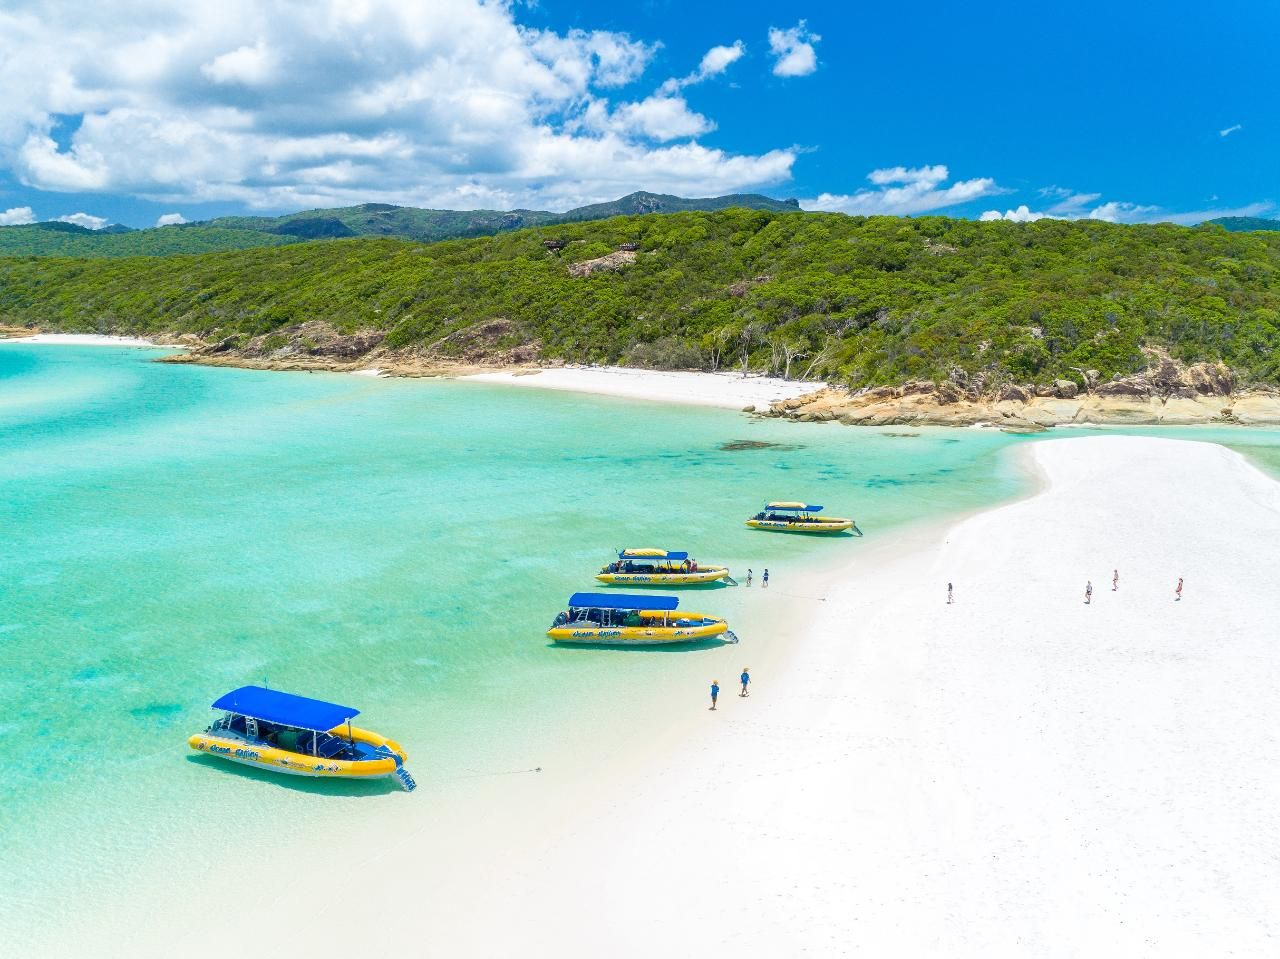 Whitsundays + Great Barrier Reef (Two Trips Deal) Whitsundays, Australia #c03aa19a-7977-4ddc-986a-f2ea2d7aa8f6